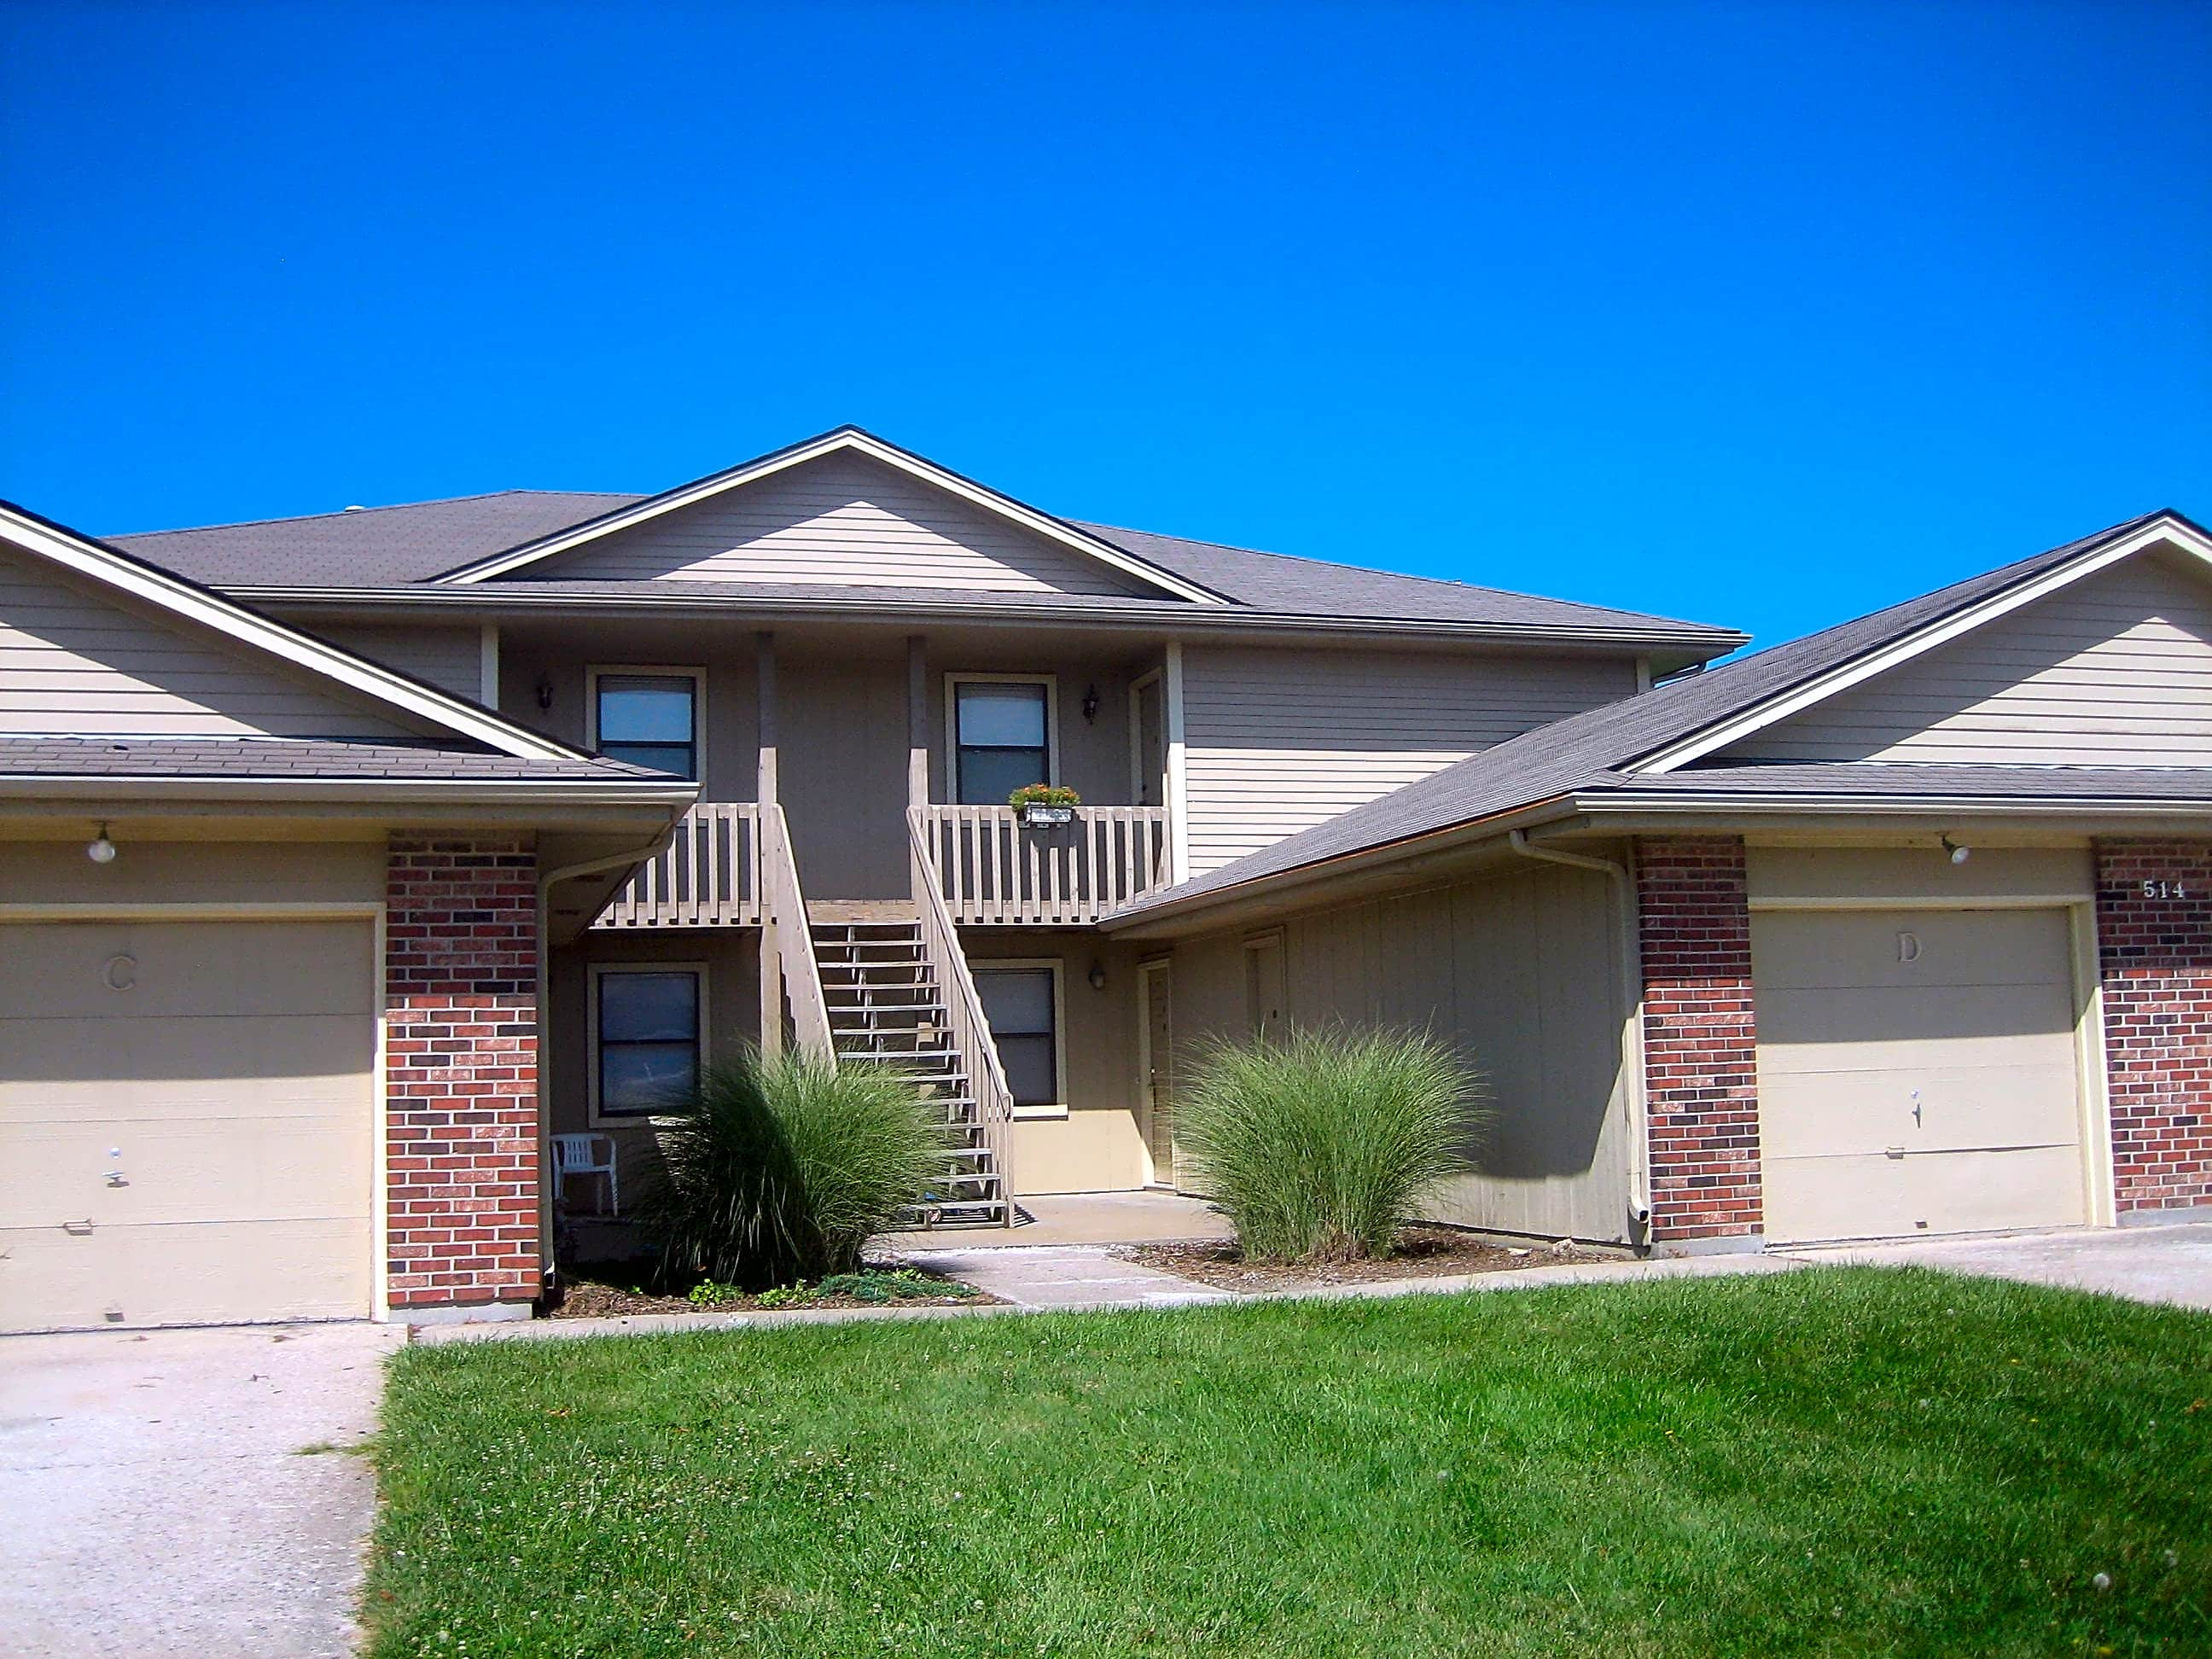 Duplex for Rent in Raymore